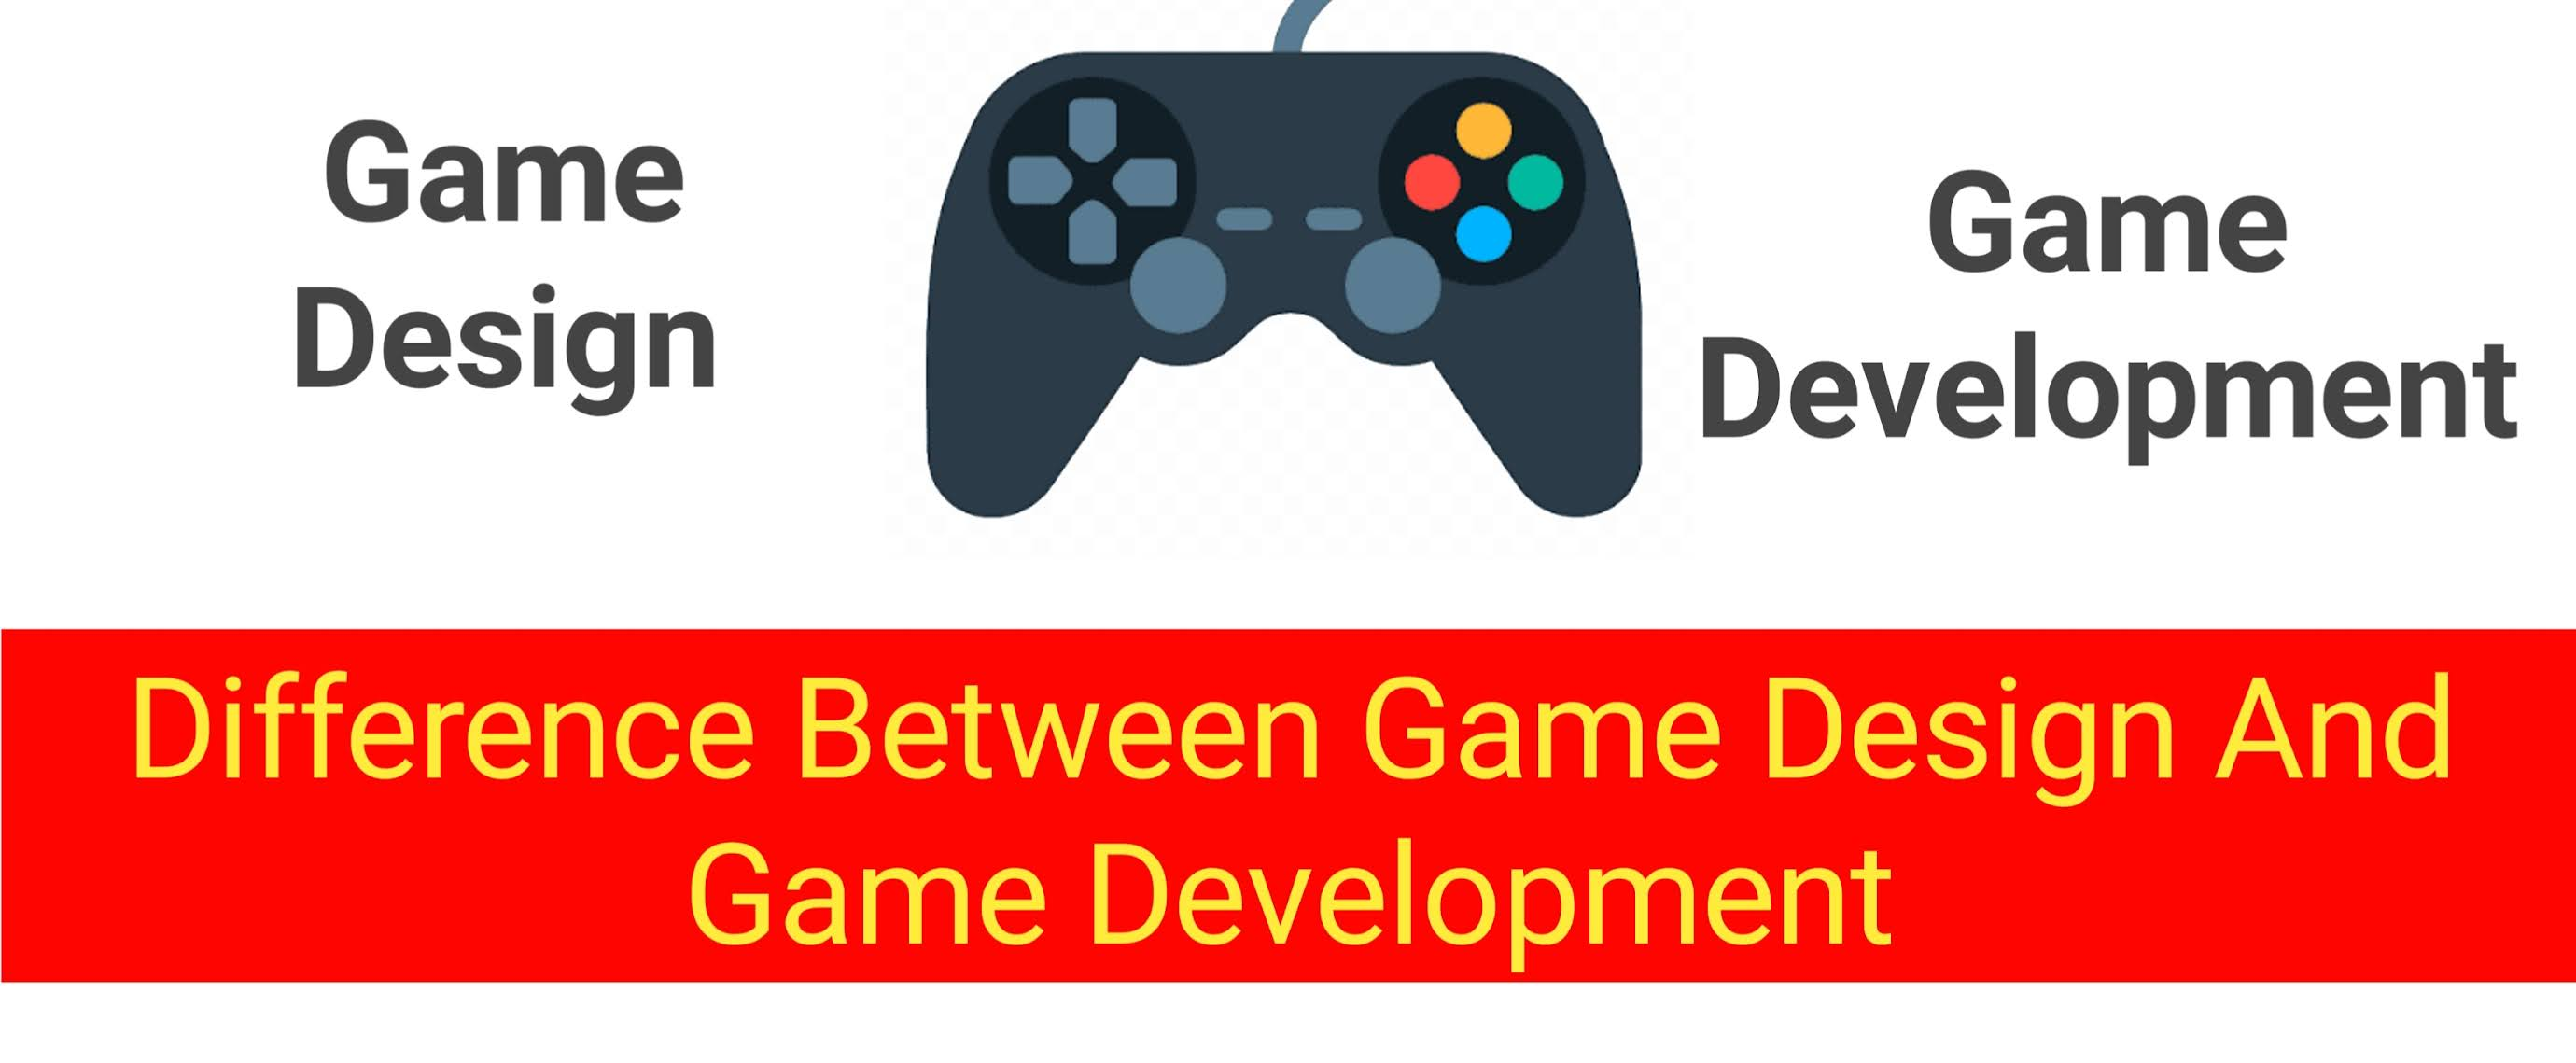 Difference Between Game Design And Game Development